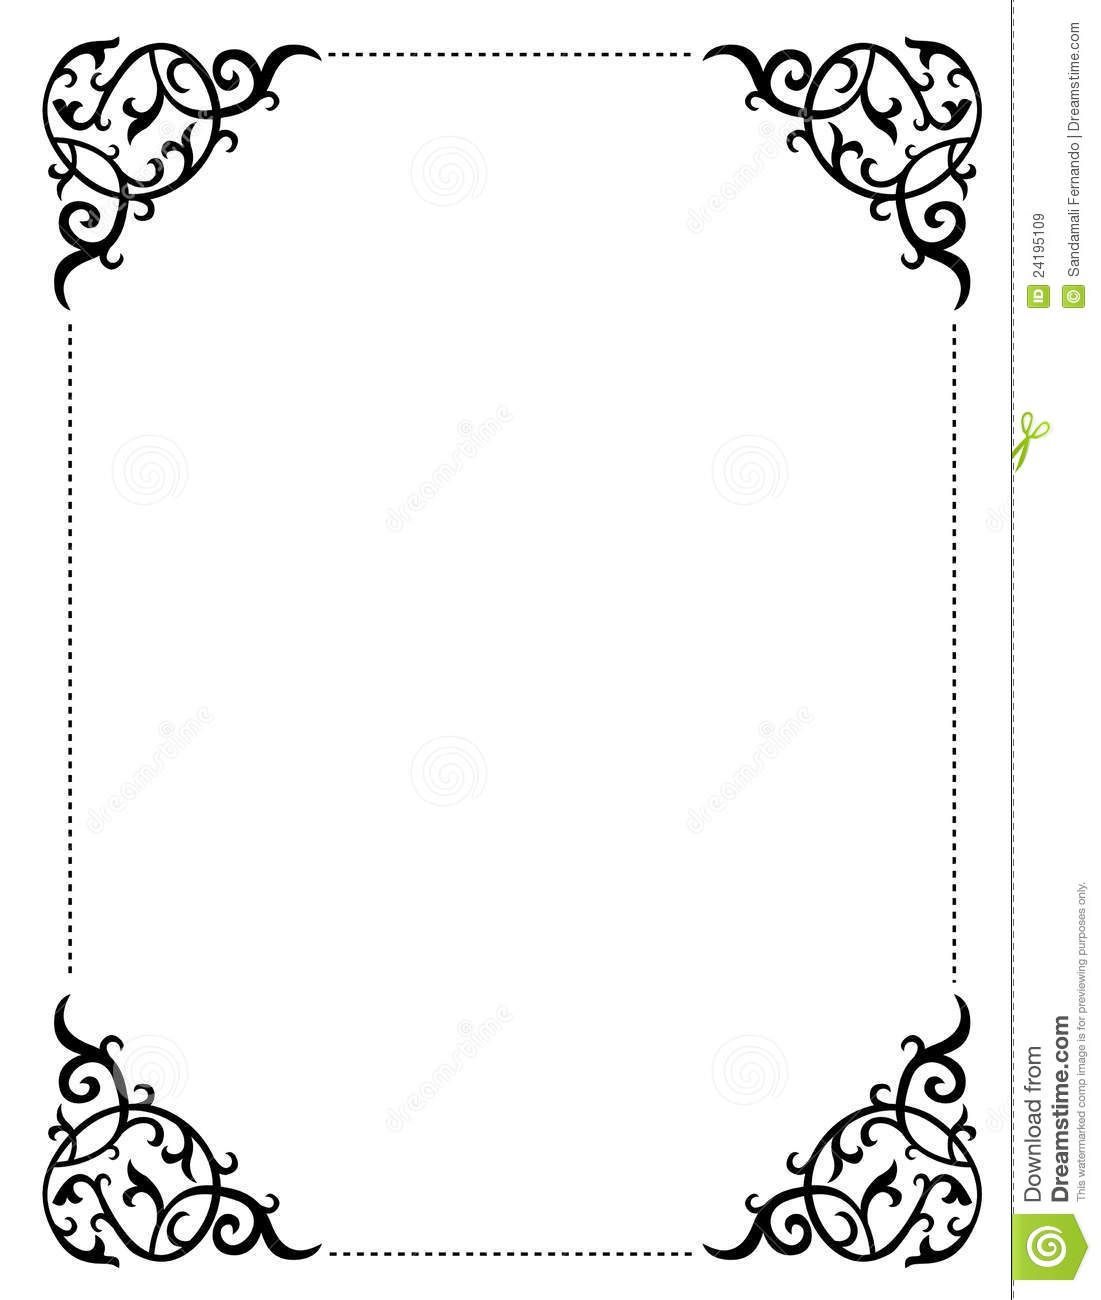 free wedding watermark clipart - photo #43